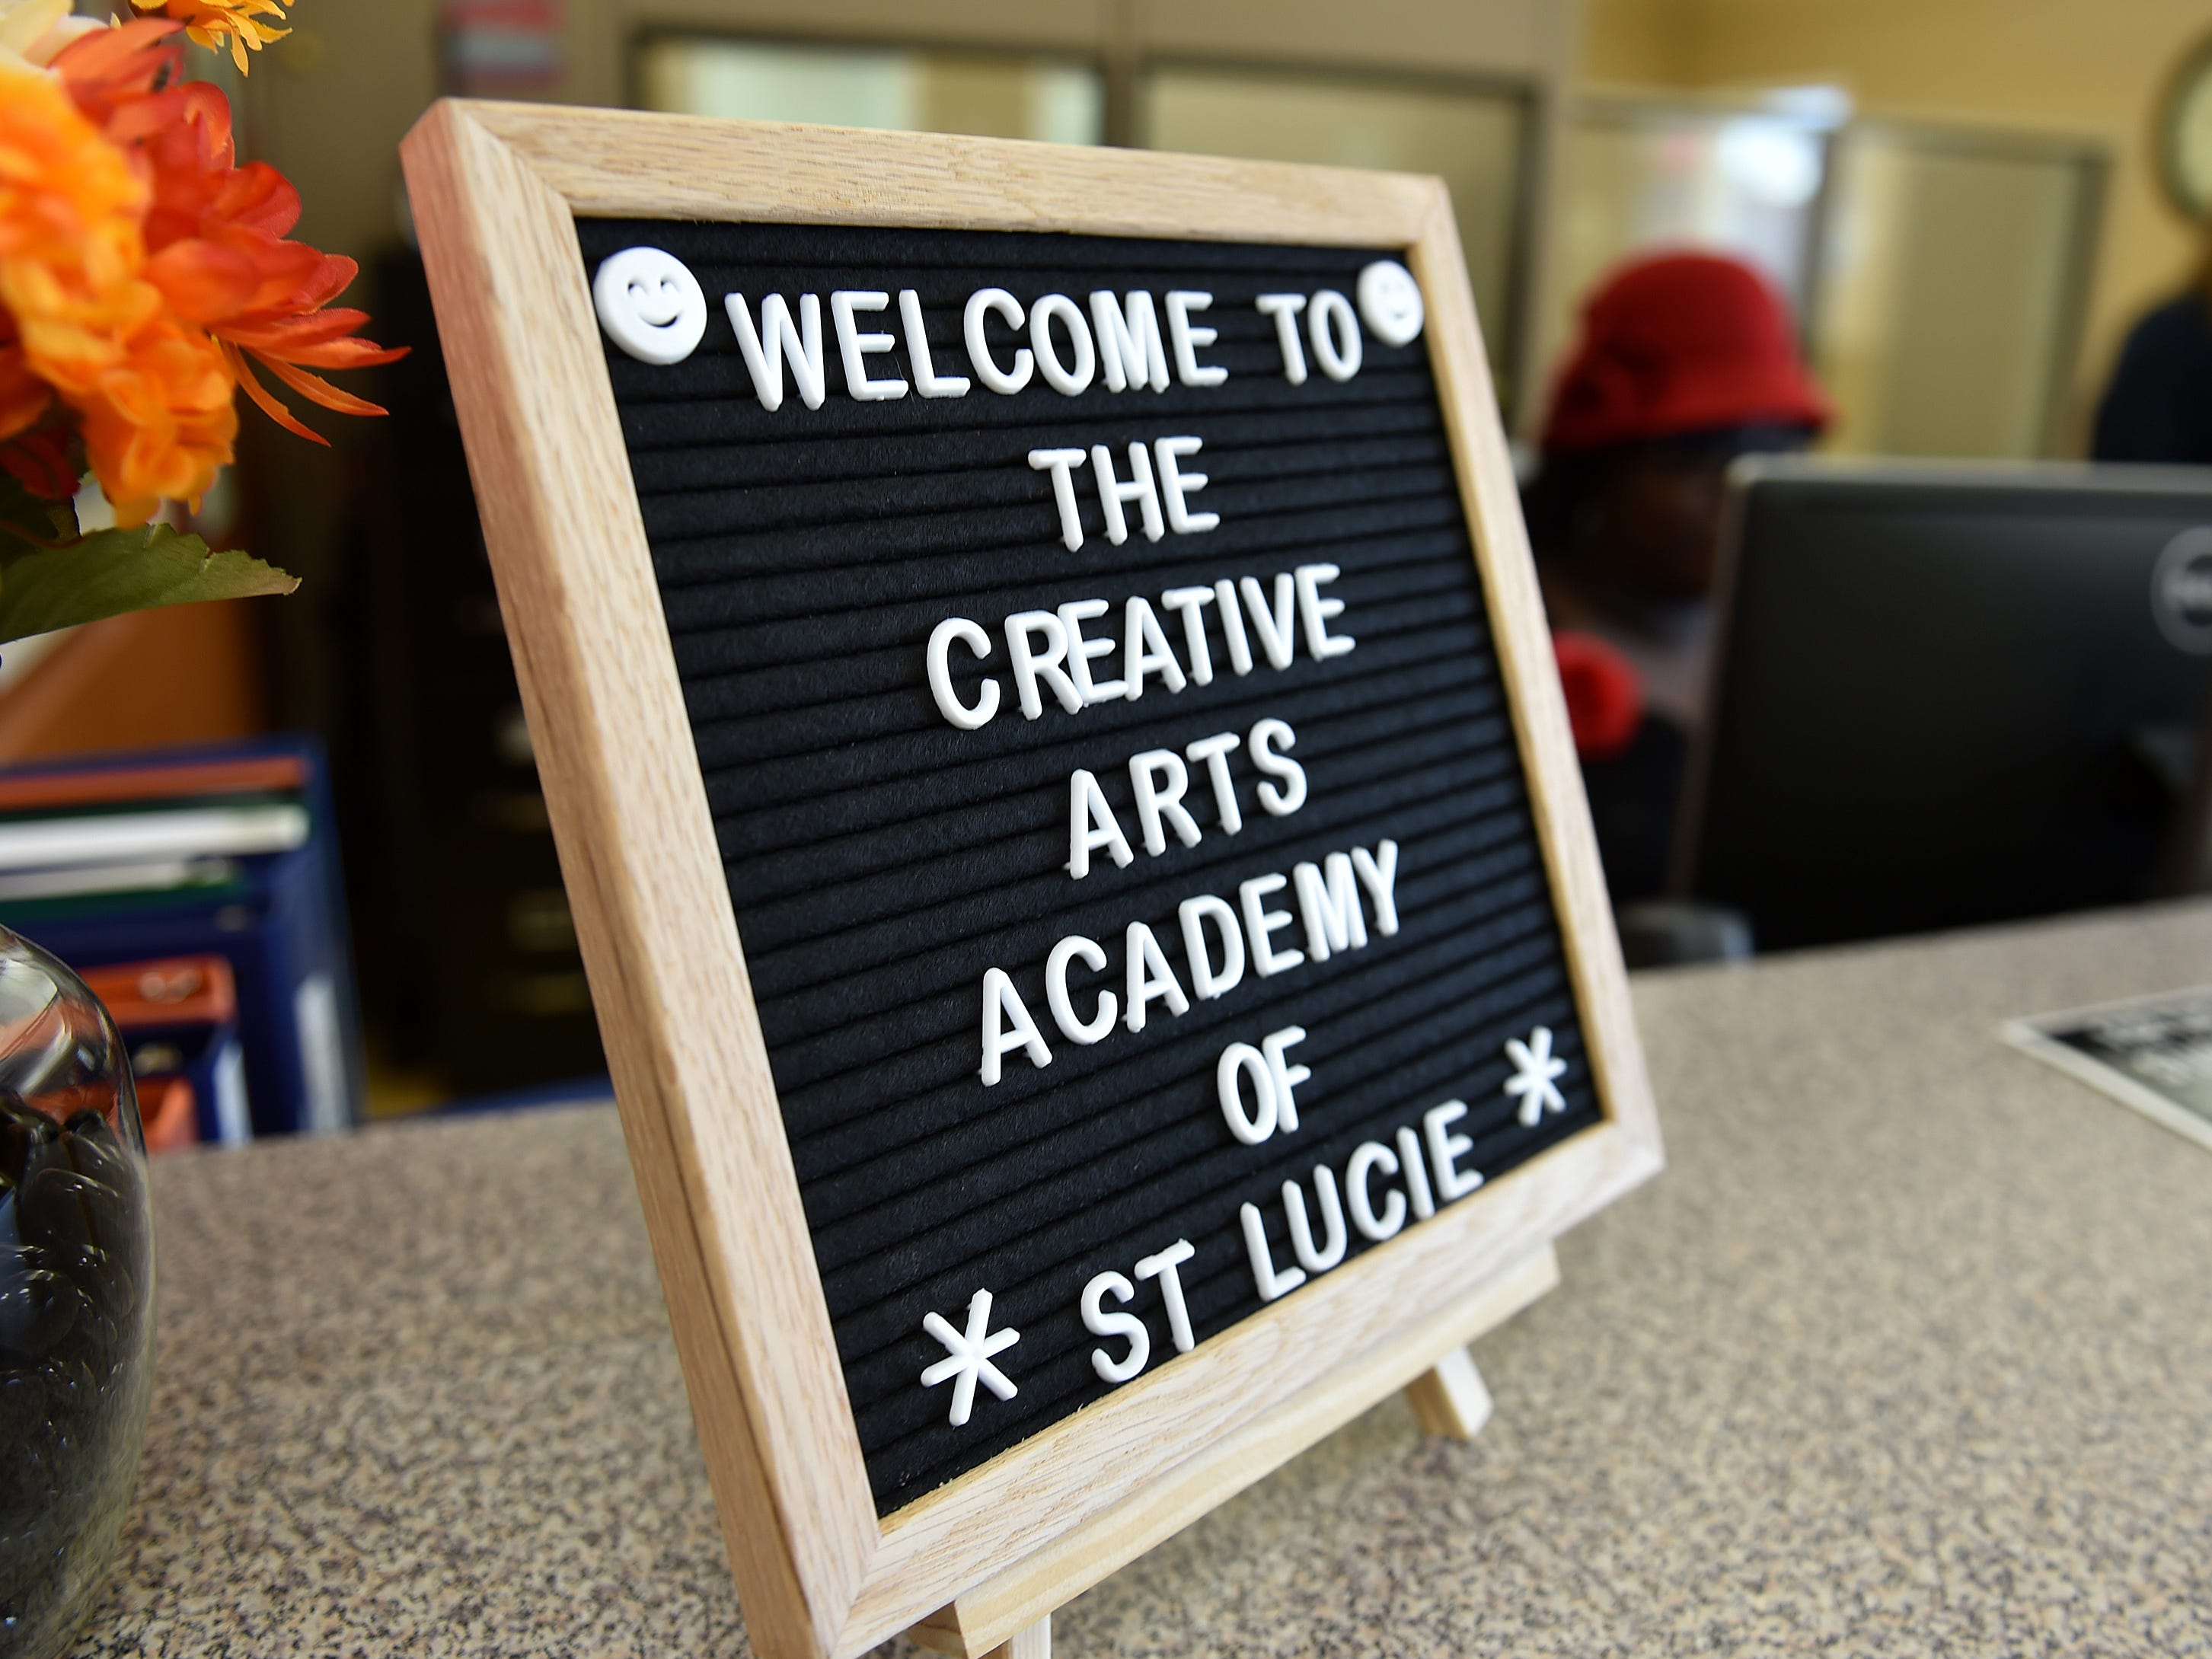 """The first day of school, Monday, August 13, 2018, at Creative Arts Academy of St. Lucie, a new K-8 school in Fort Pierce, part of St. Lucie Public Schools in St. Lucie County. """"The first day is always an exciting day, the kids are excited to come back, their teachers are all excited, and we're just looking forward to another great year,"""" said Wayne Gent, Superintendent of St. Lucie Public Schools."""